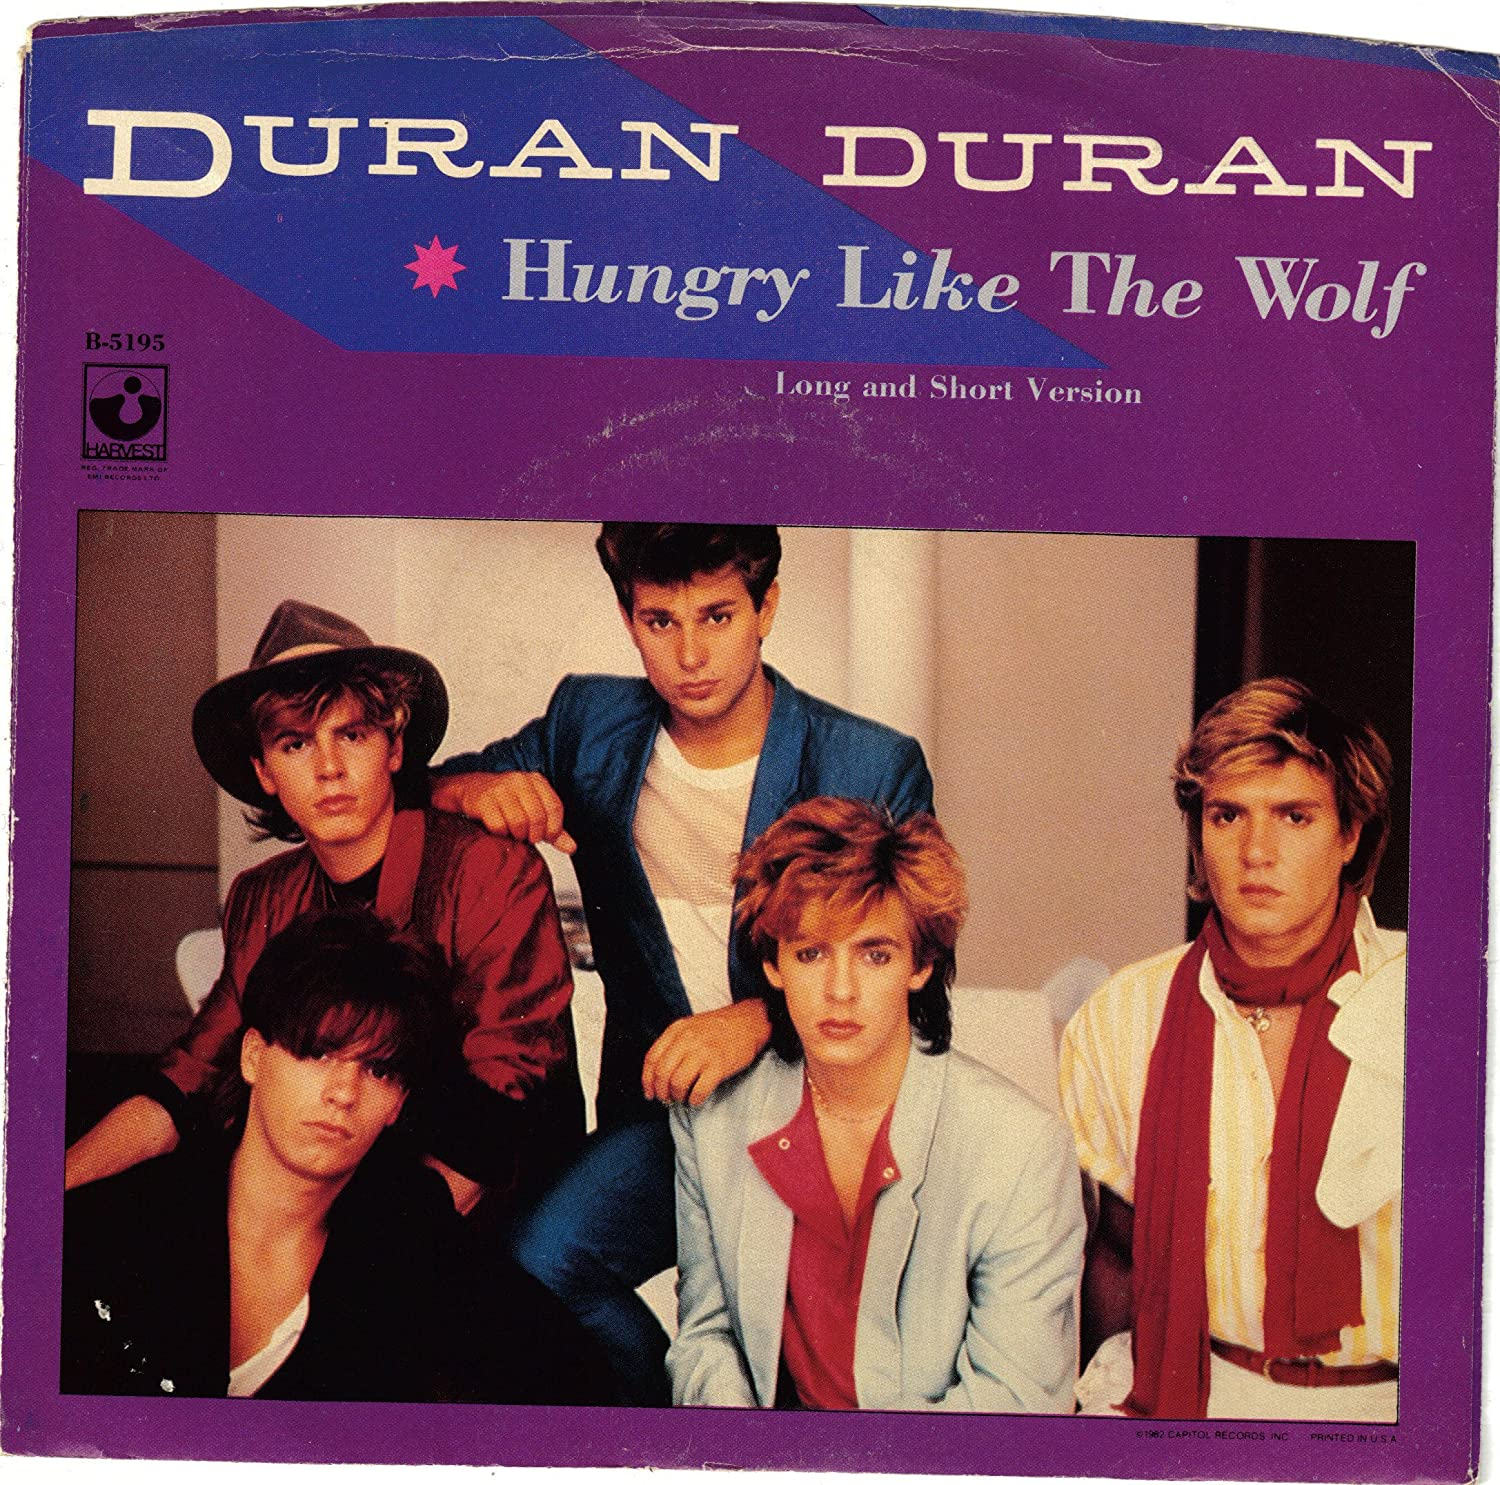 DURAN DURAN - DURAN DURAN   Hungry Like The Wolf   PICTURE SLEEVE ONLY! -  Amazon.com Music b027d09bfee5